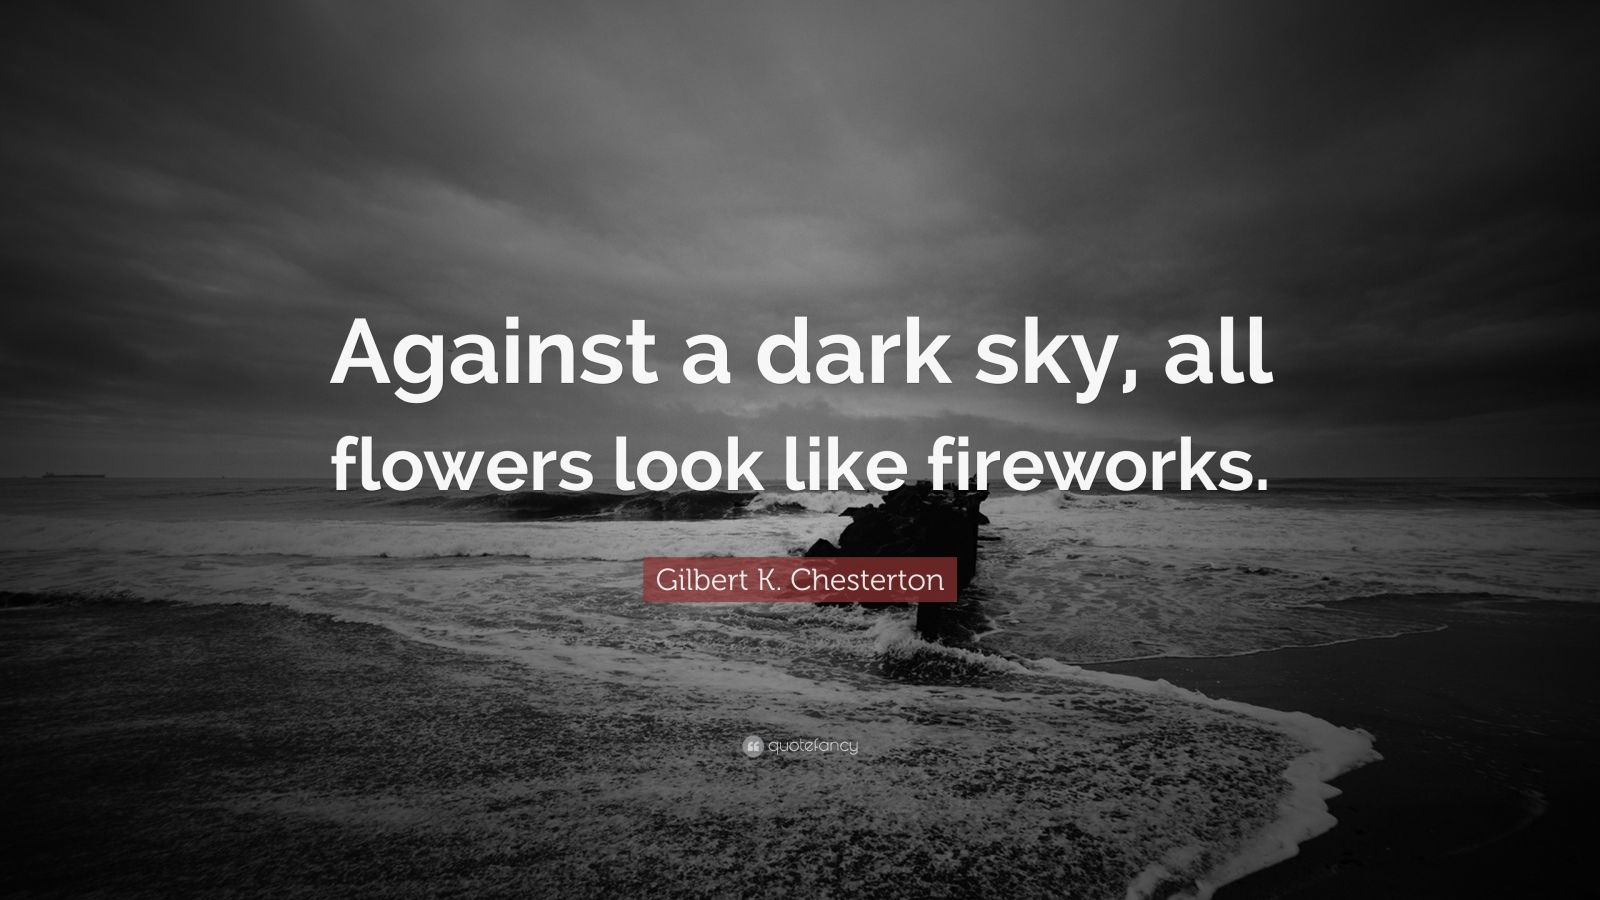 """Gilbert K. Chesterton Quote: """"Against a dark sky, all flowers look like fireworks."""""""